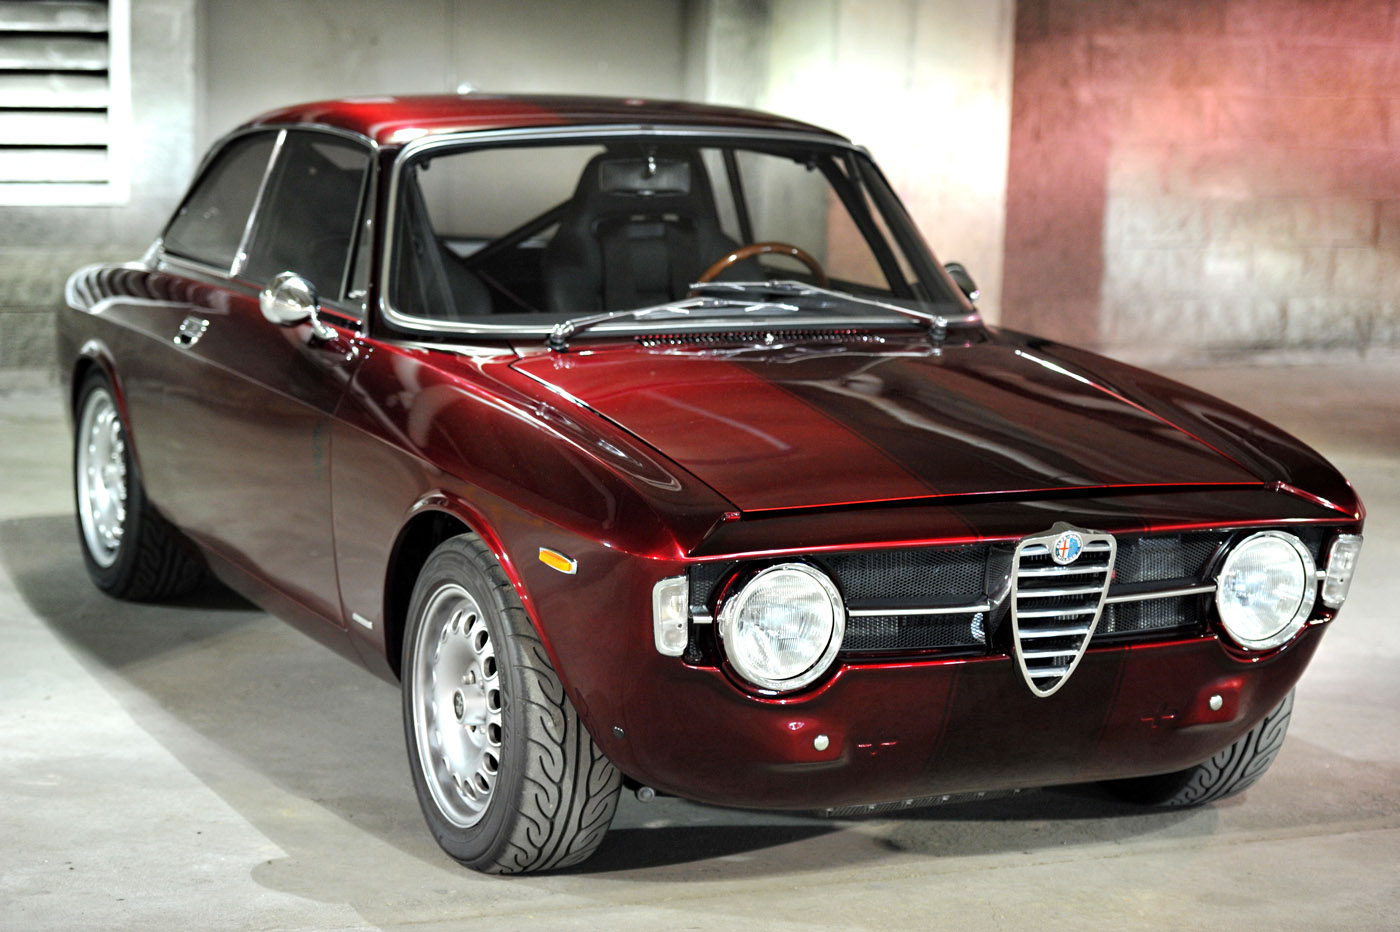 Alfa Romeo Gt Wiring Diagrams - Wiring Diagram Data on alfa romeo spider engine swap, alfa romeo spider parts catalog, alfa romeo spider engine diagram, alfa romeo spider oil leak,